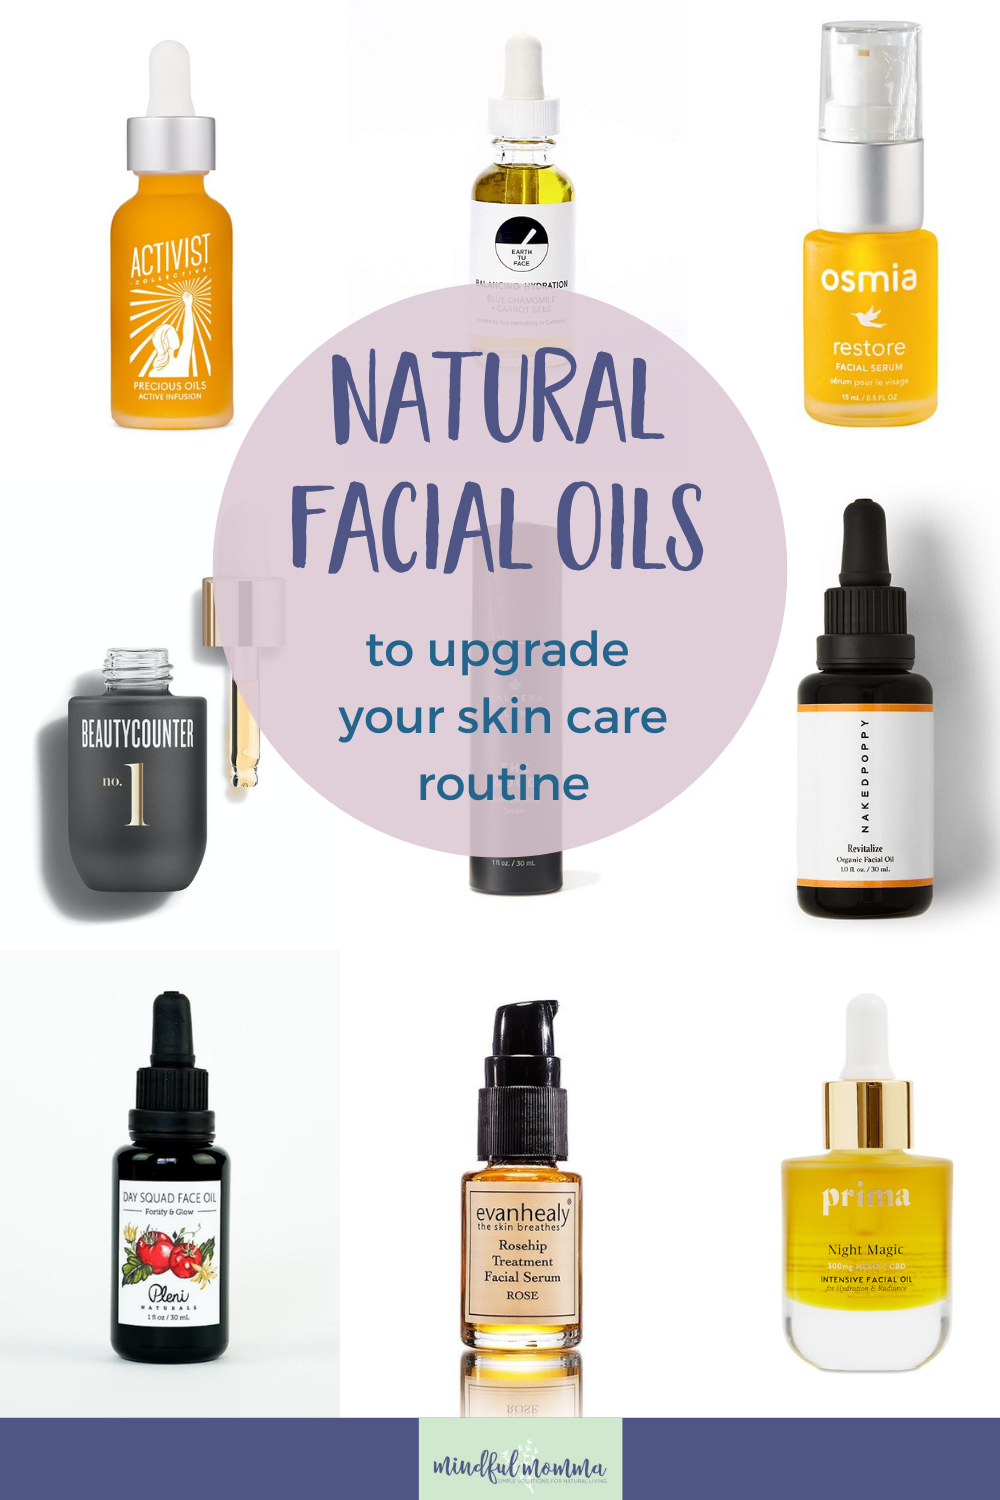 Learn why a facial oil serum could be a great addition to your skin care routine, plus discover the best facial oils for your skin type and personal needs. | beauty and skin care products via @MindfulMomma